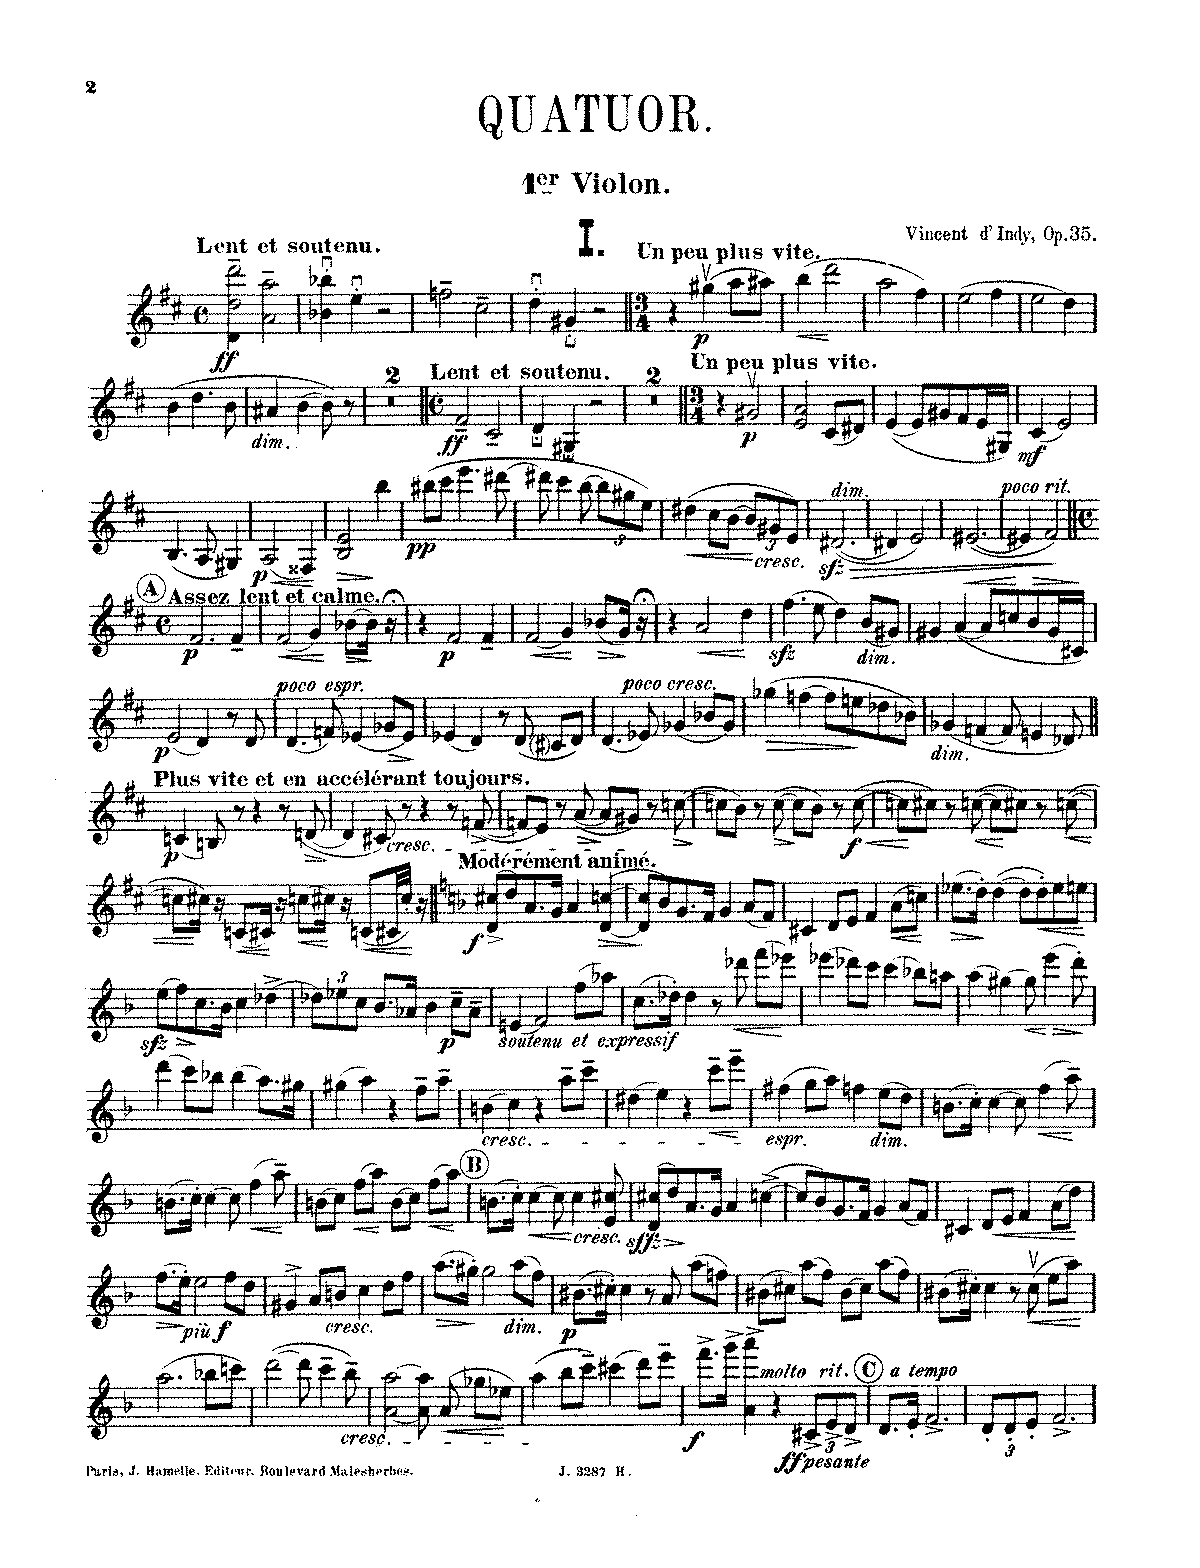 D'Indy - String Quartet No. 1, Op. 35 (parts).pdf